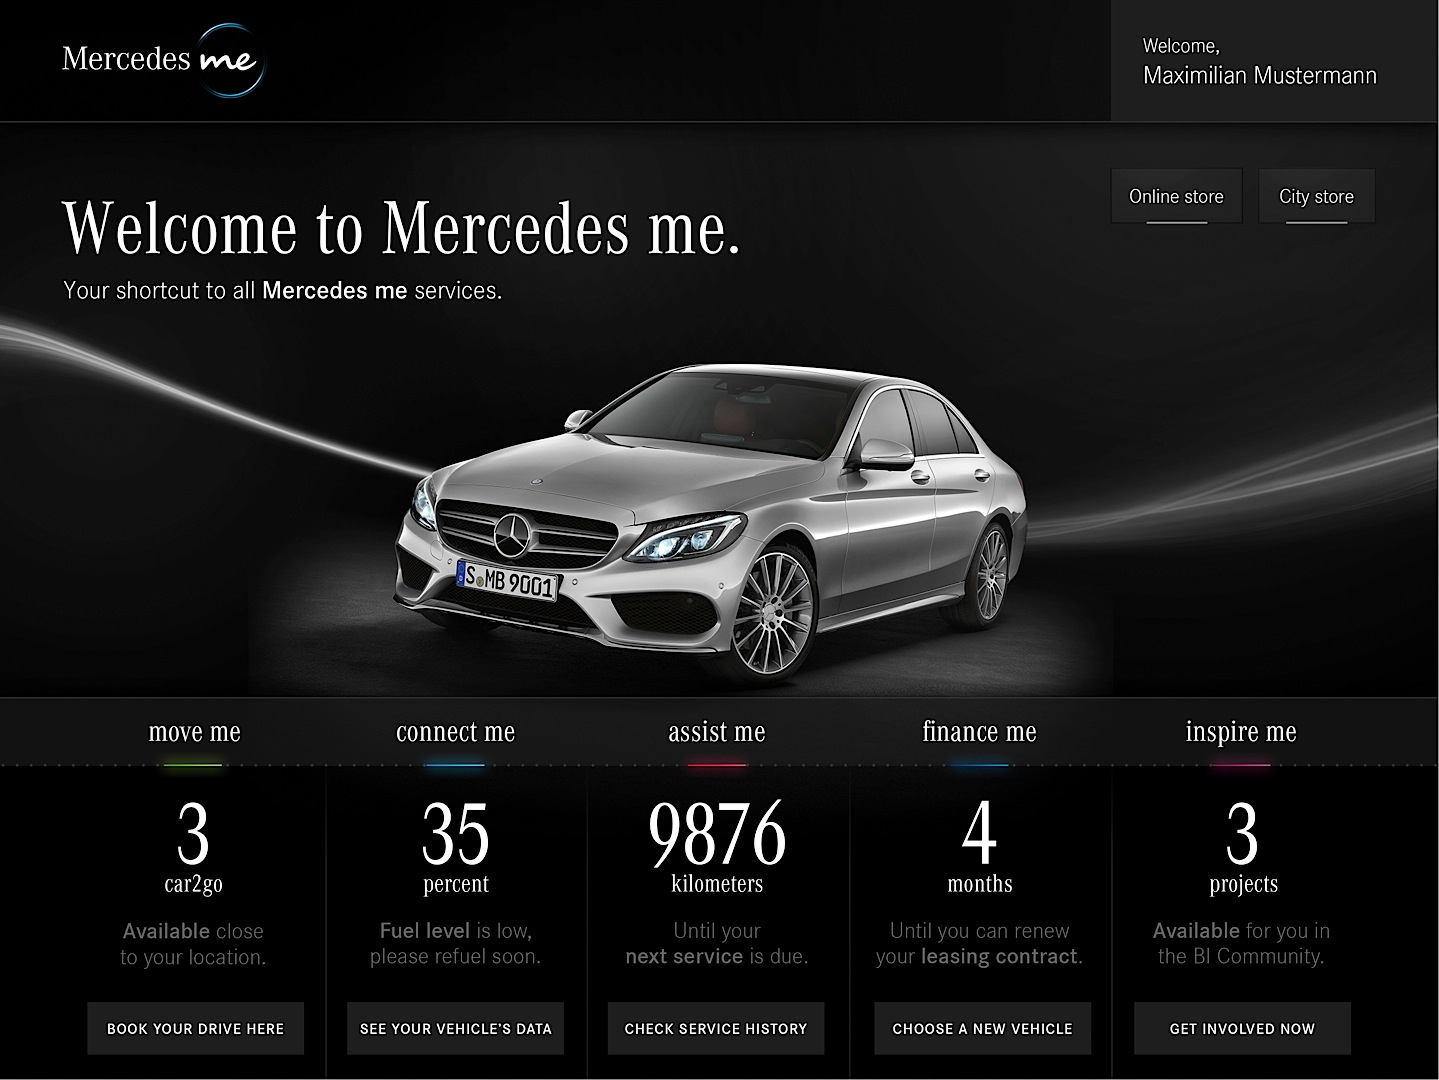 Daimler Launches Revolutionary Mercedes Me Service Brand